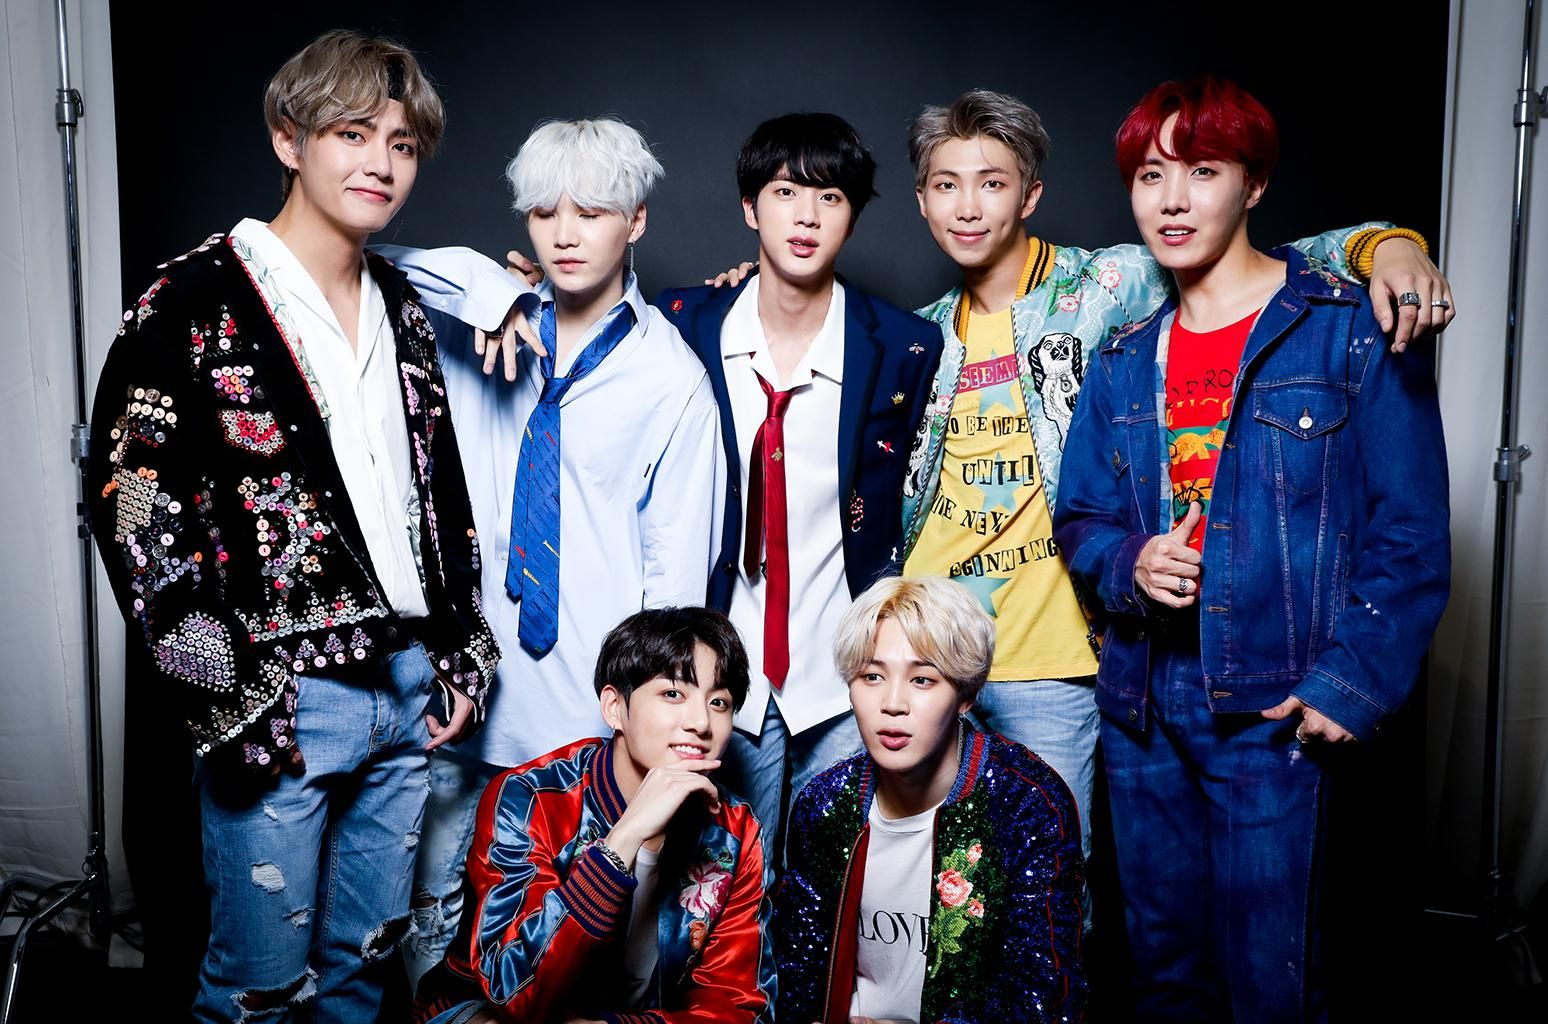 I Found This Cool Kahoot Called Guess The Bts Band Member Play It And Check Out More Games At Kahoot Com Bts Billboard Bts 2018 Bts Group